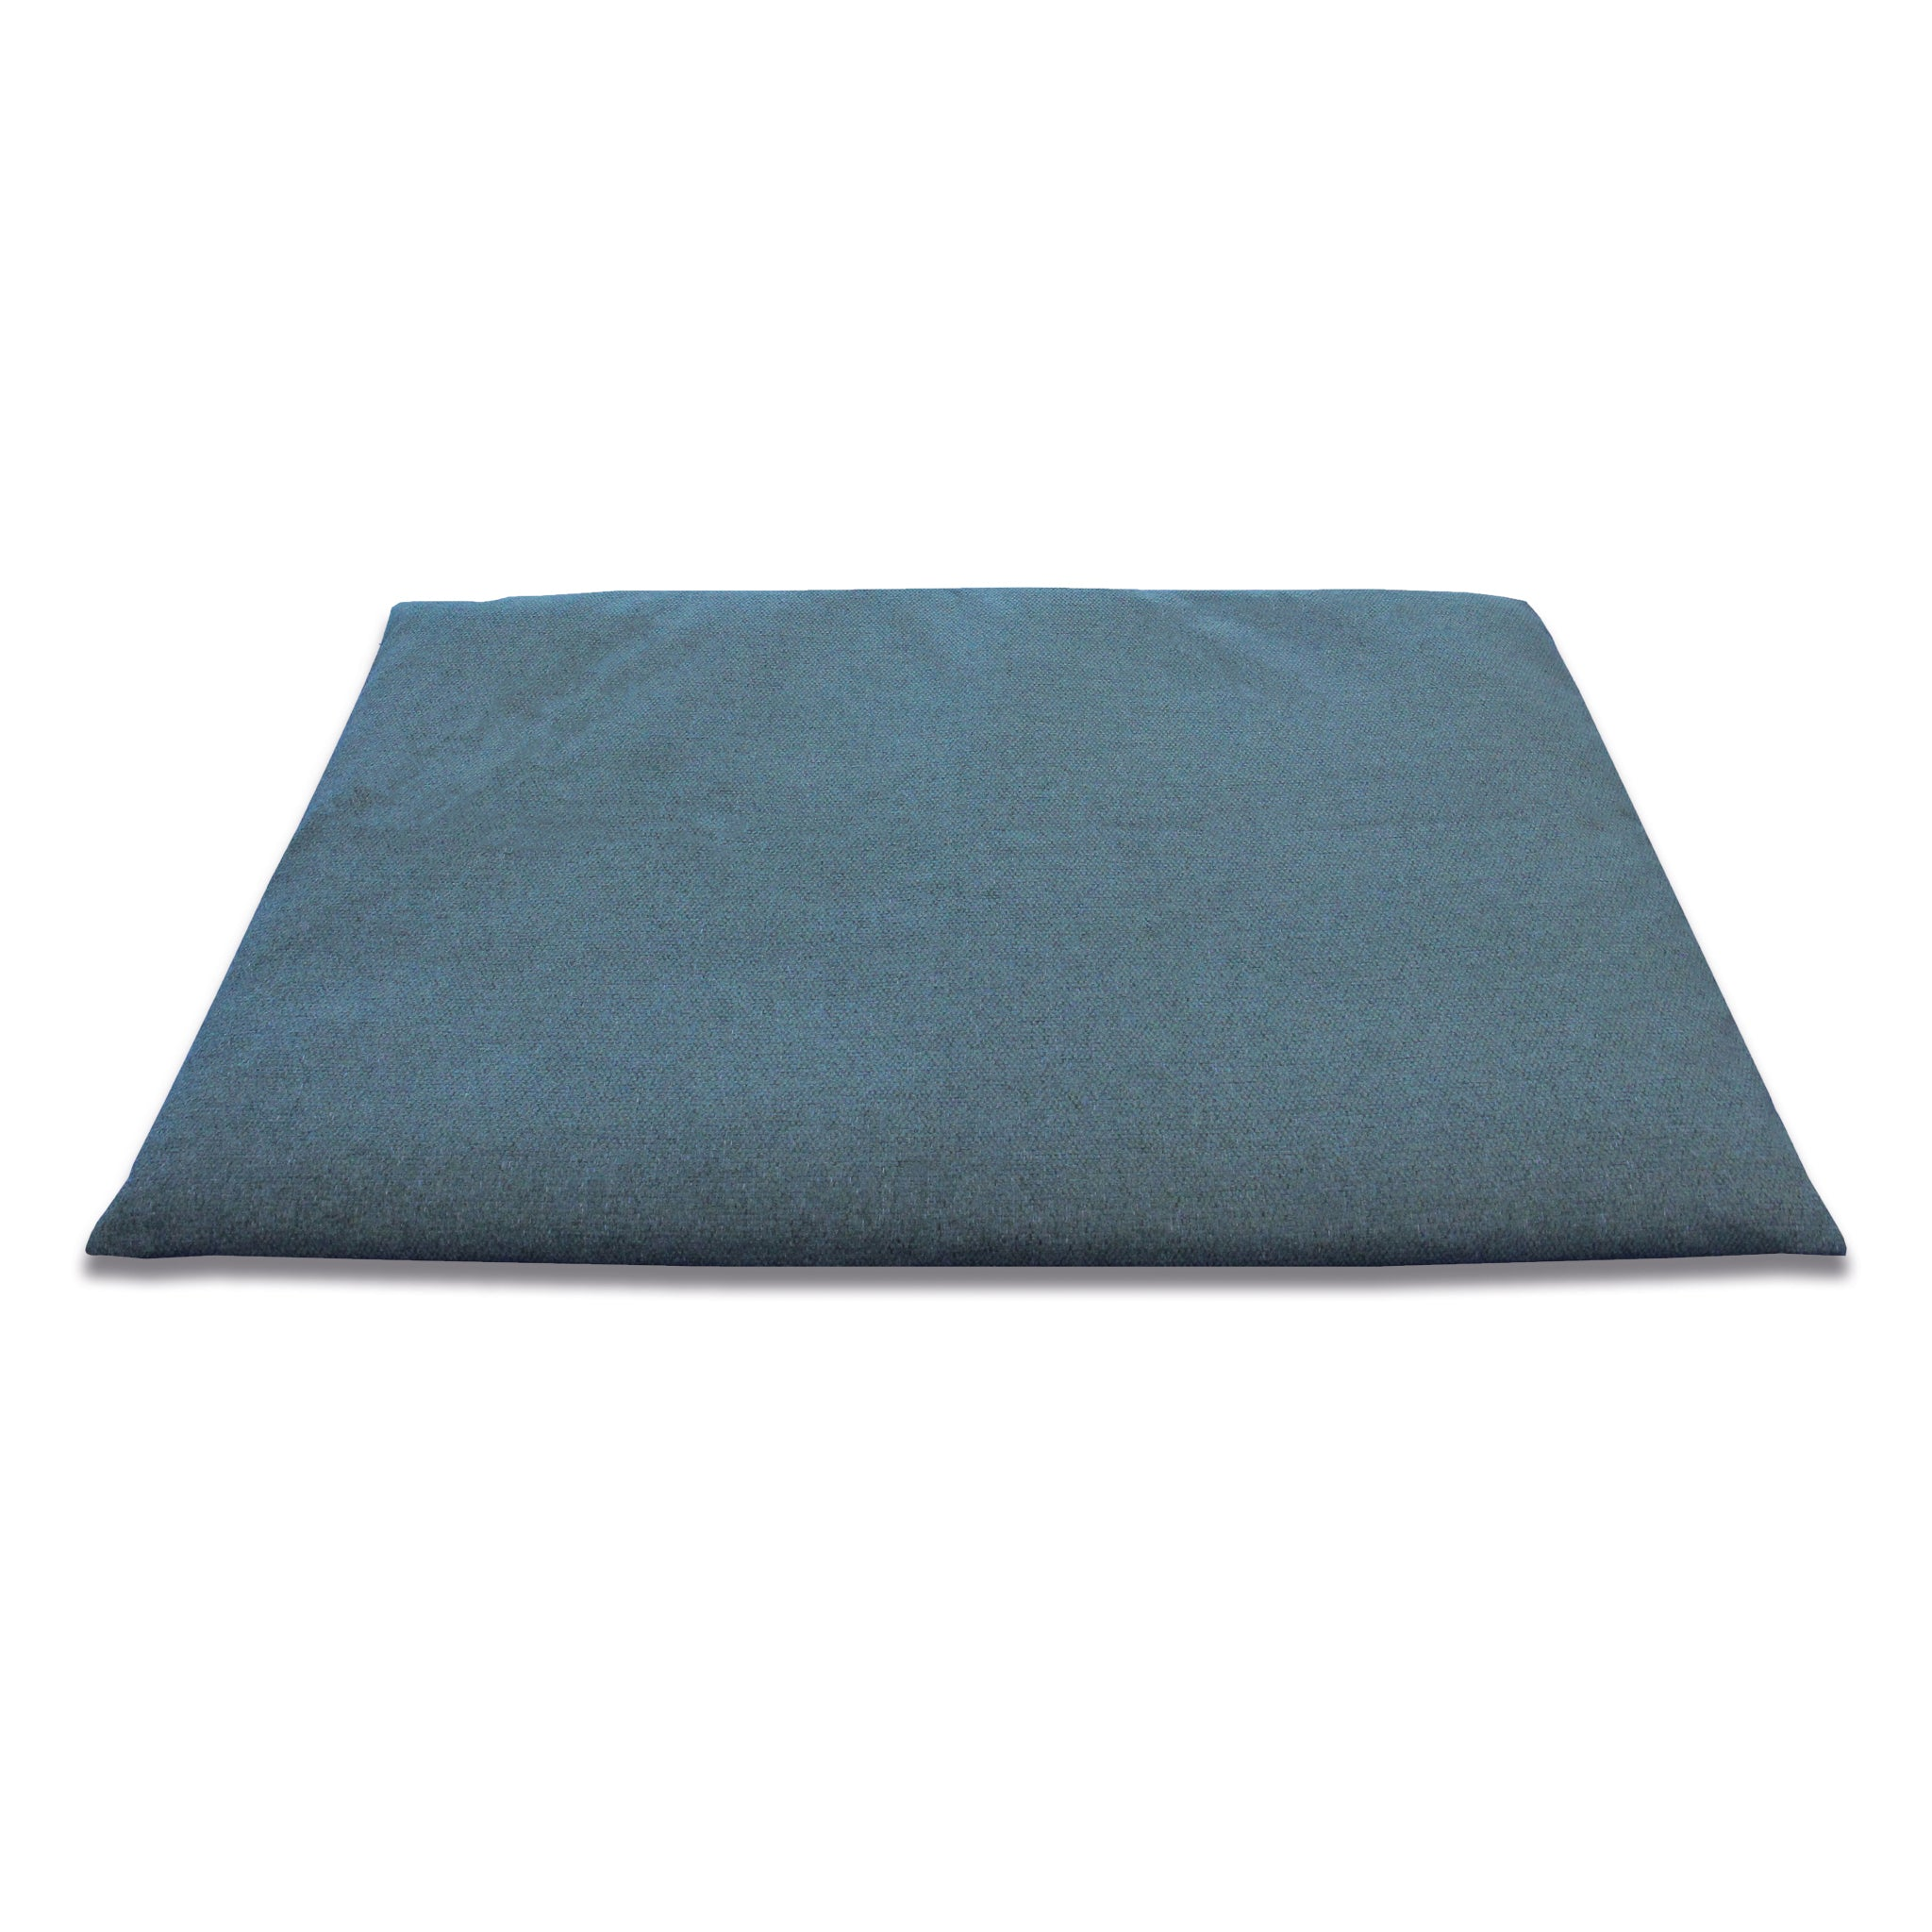 Benchmat - Cozy Easy Clean Groen